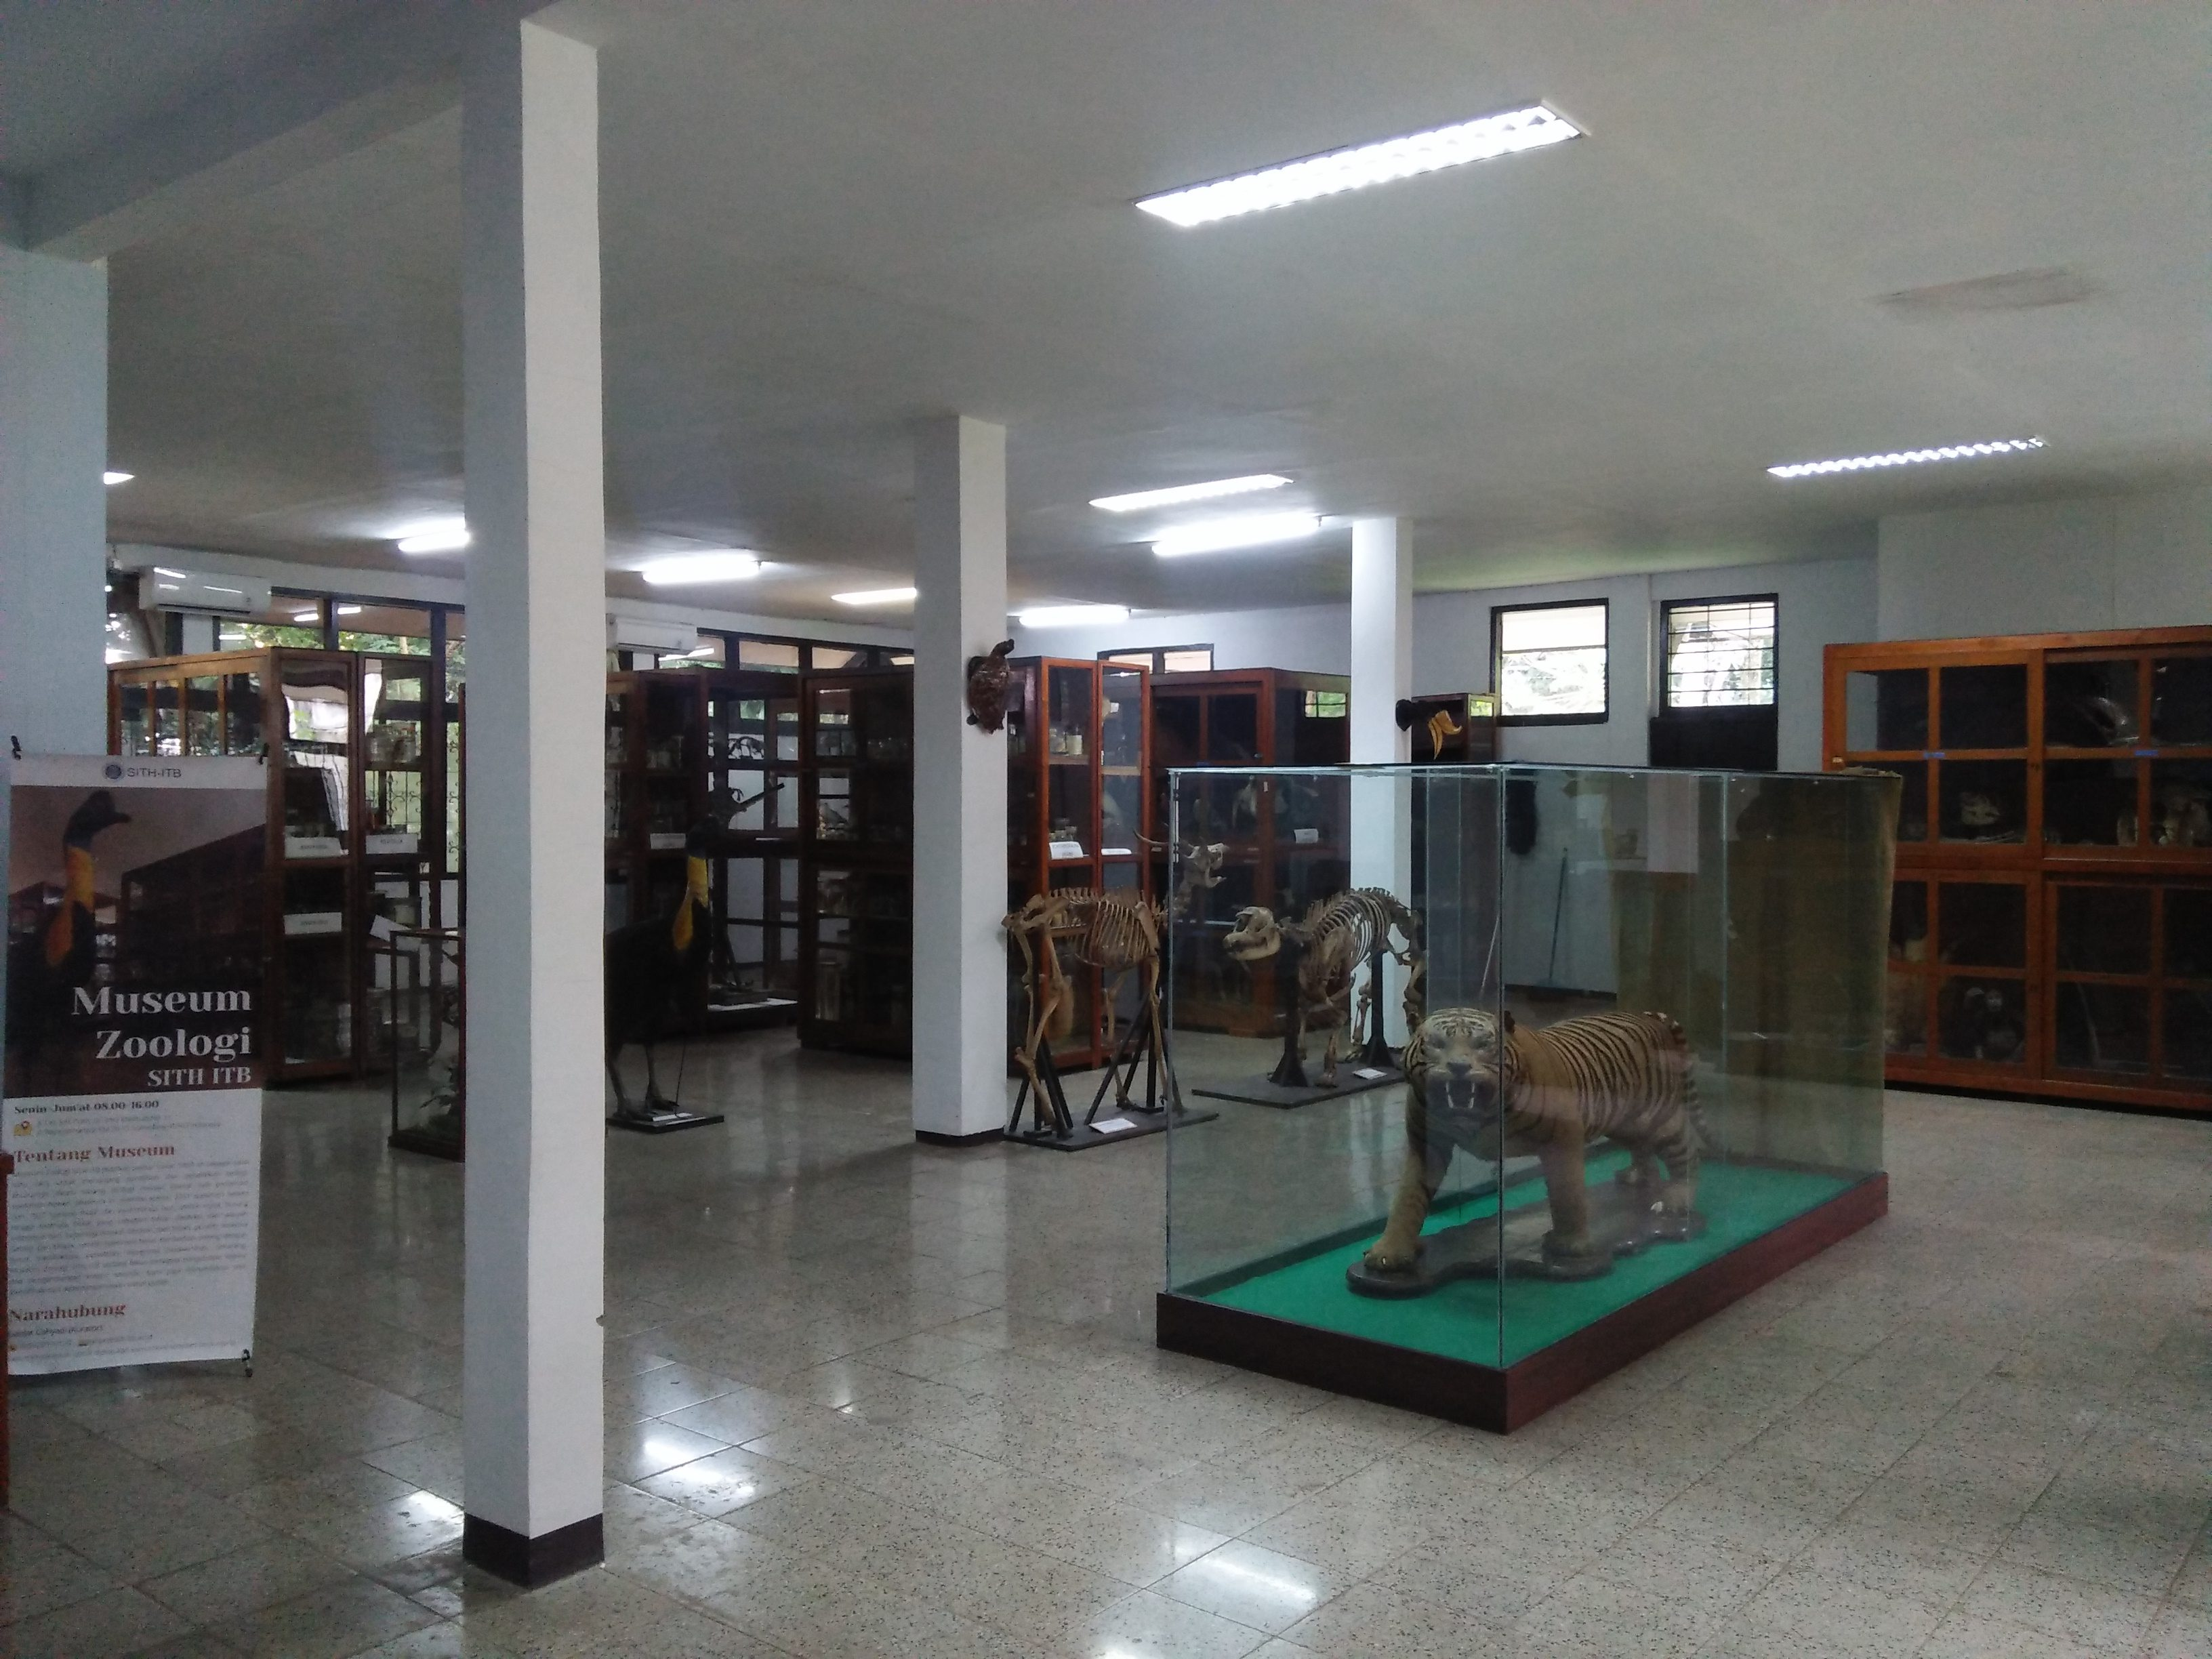 Main Hall of Museum Zoologi SITH ITB